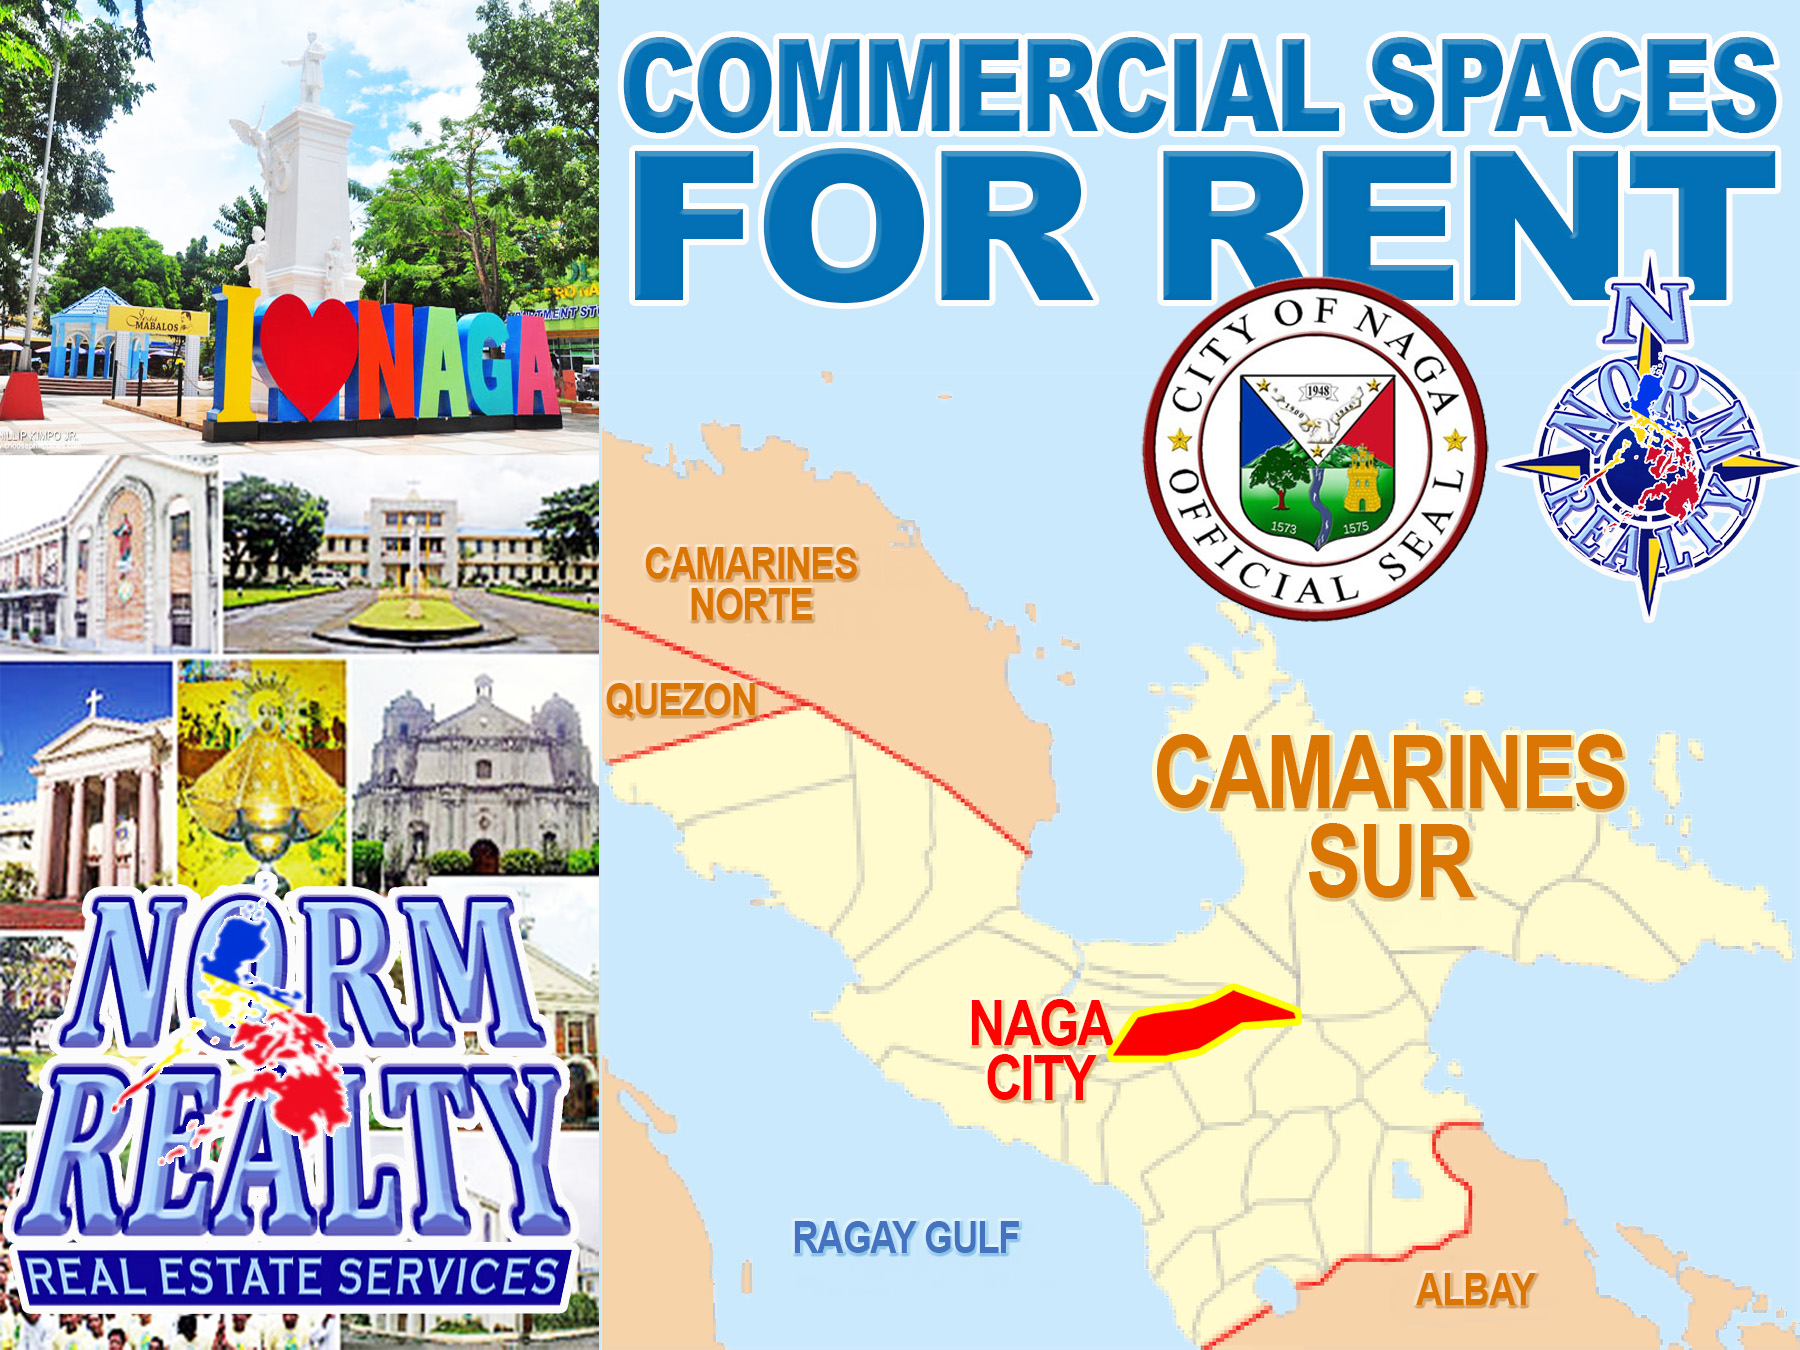 FOR RENT / LEASE: Office / Commercial / Industrial Camarines Sur > Naga City 0